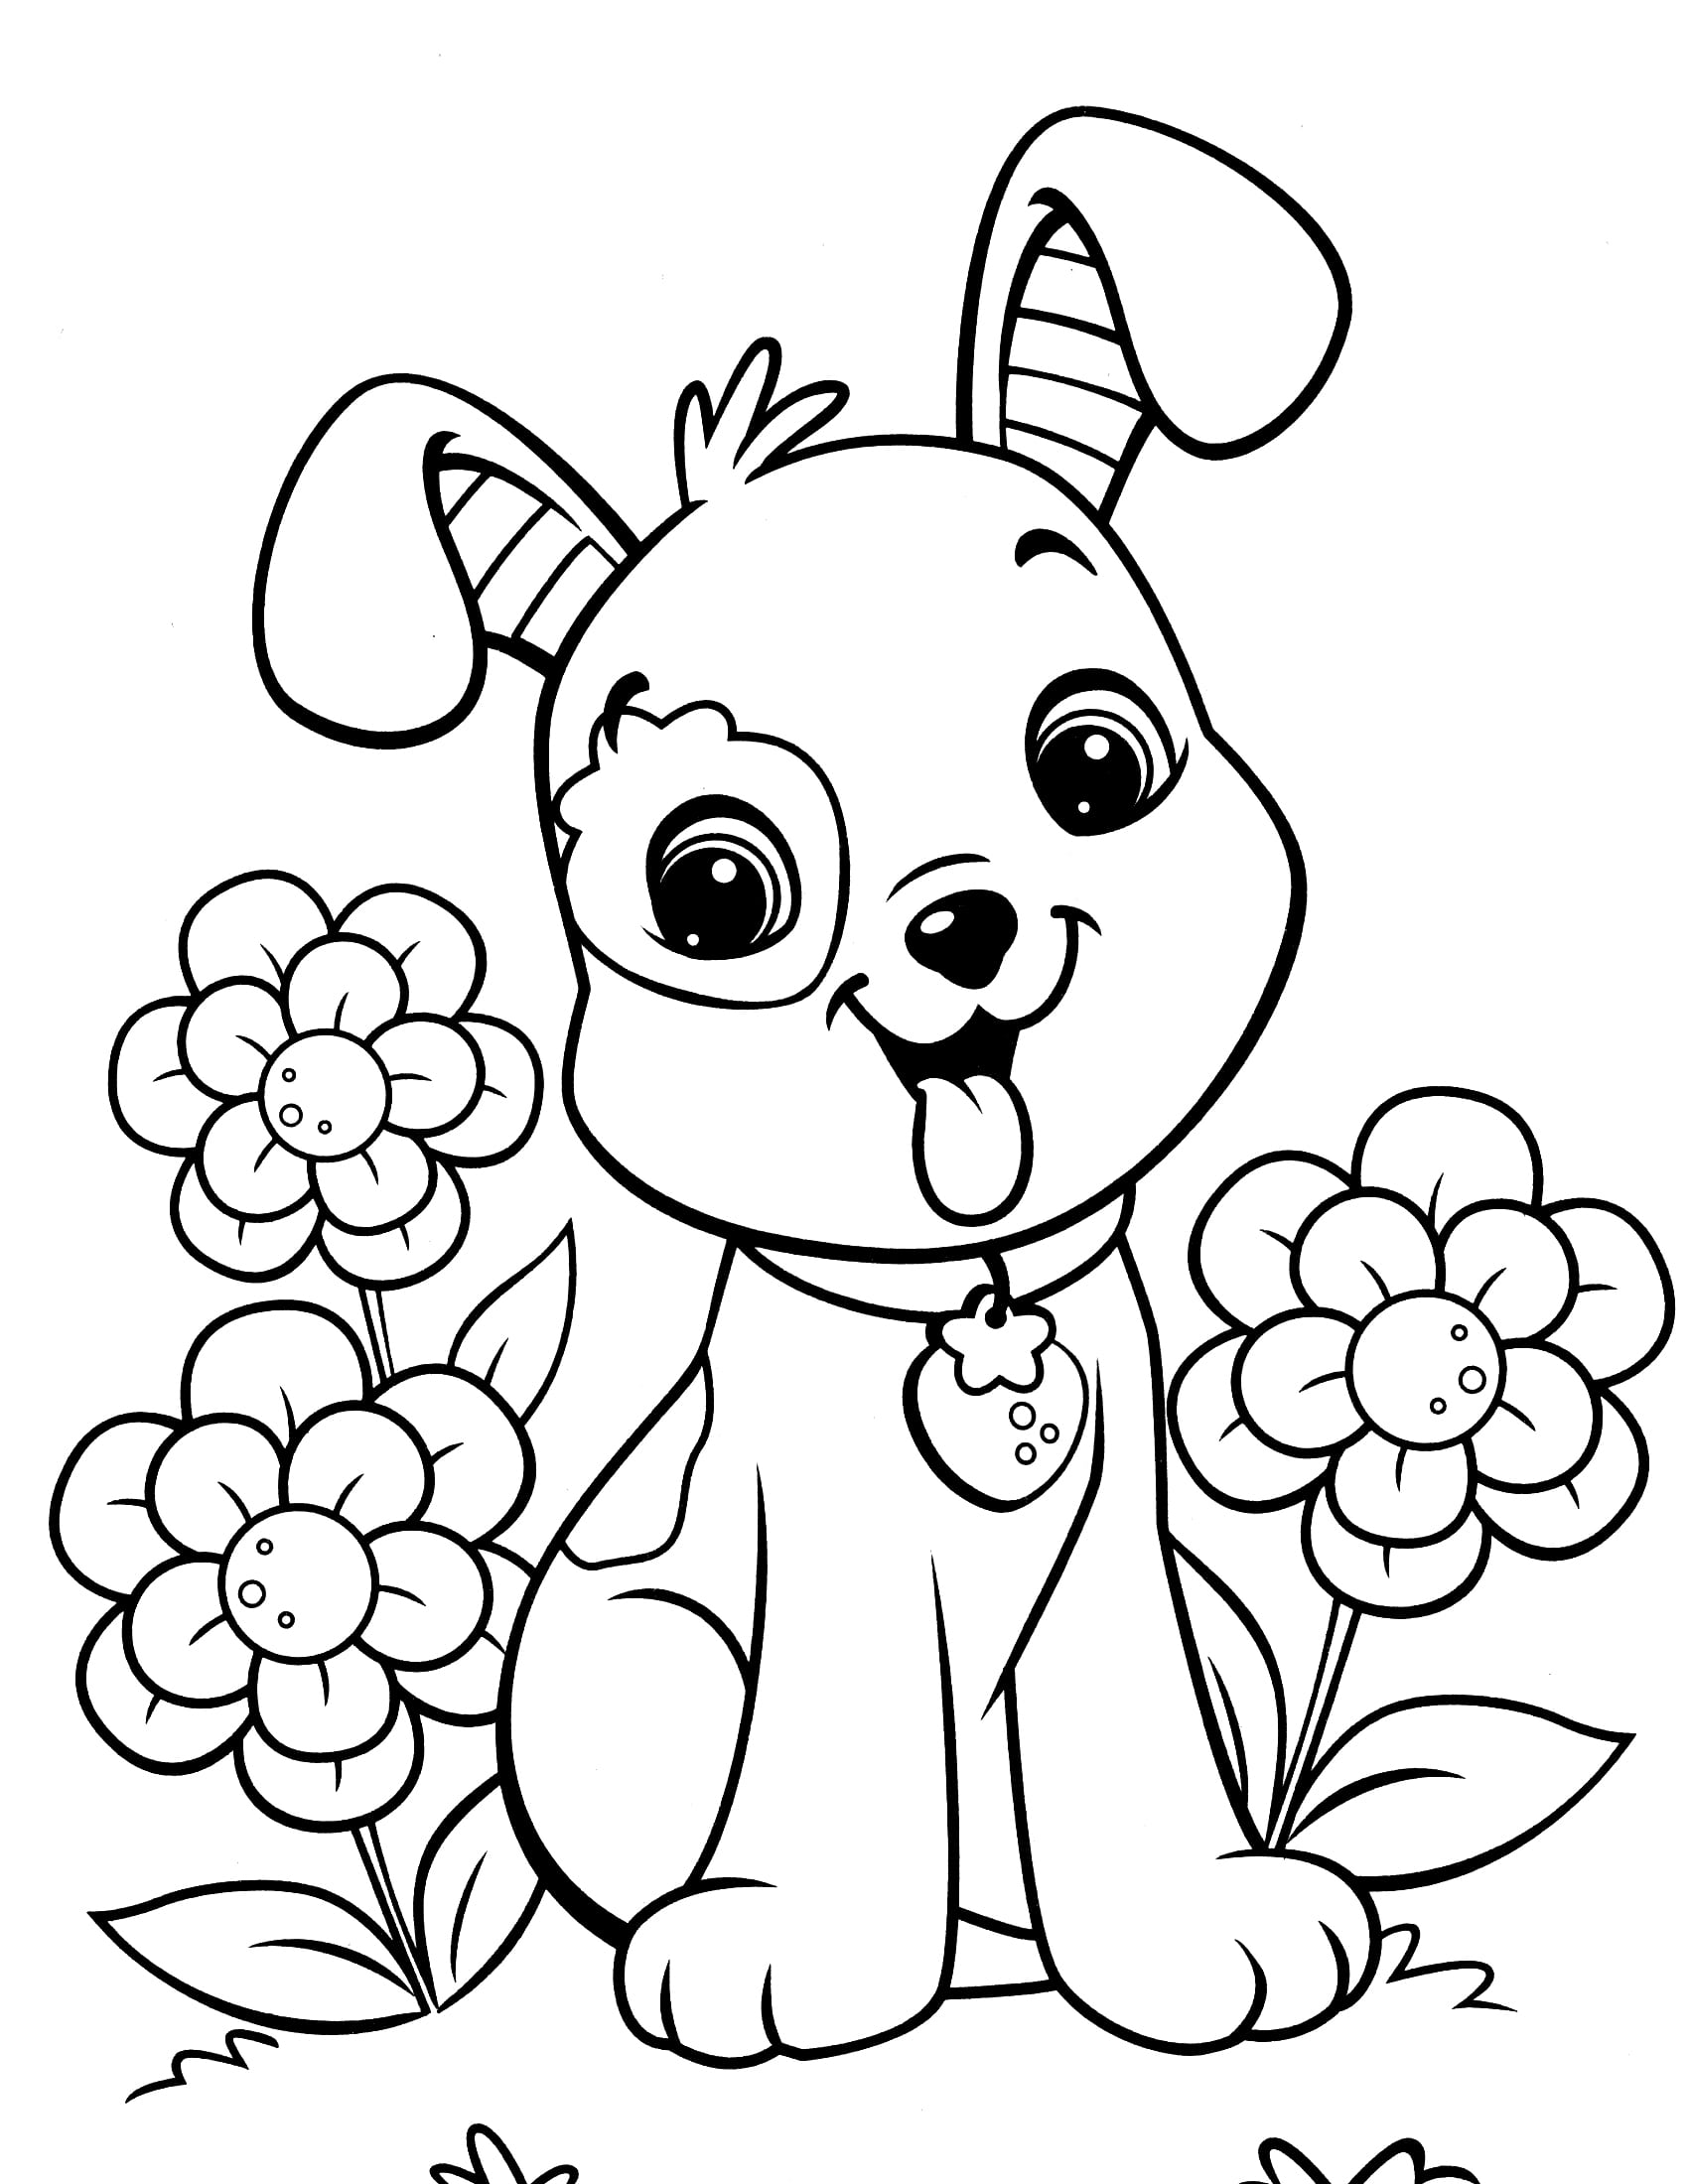 Guaranteed Puppy Colouring Sheets Cute Pages 12020  3607